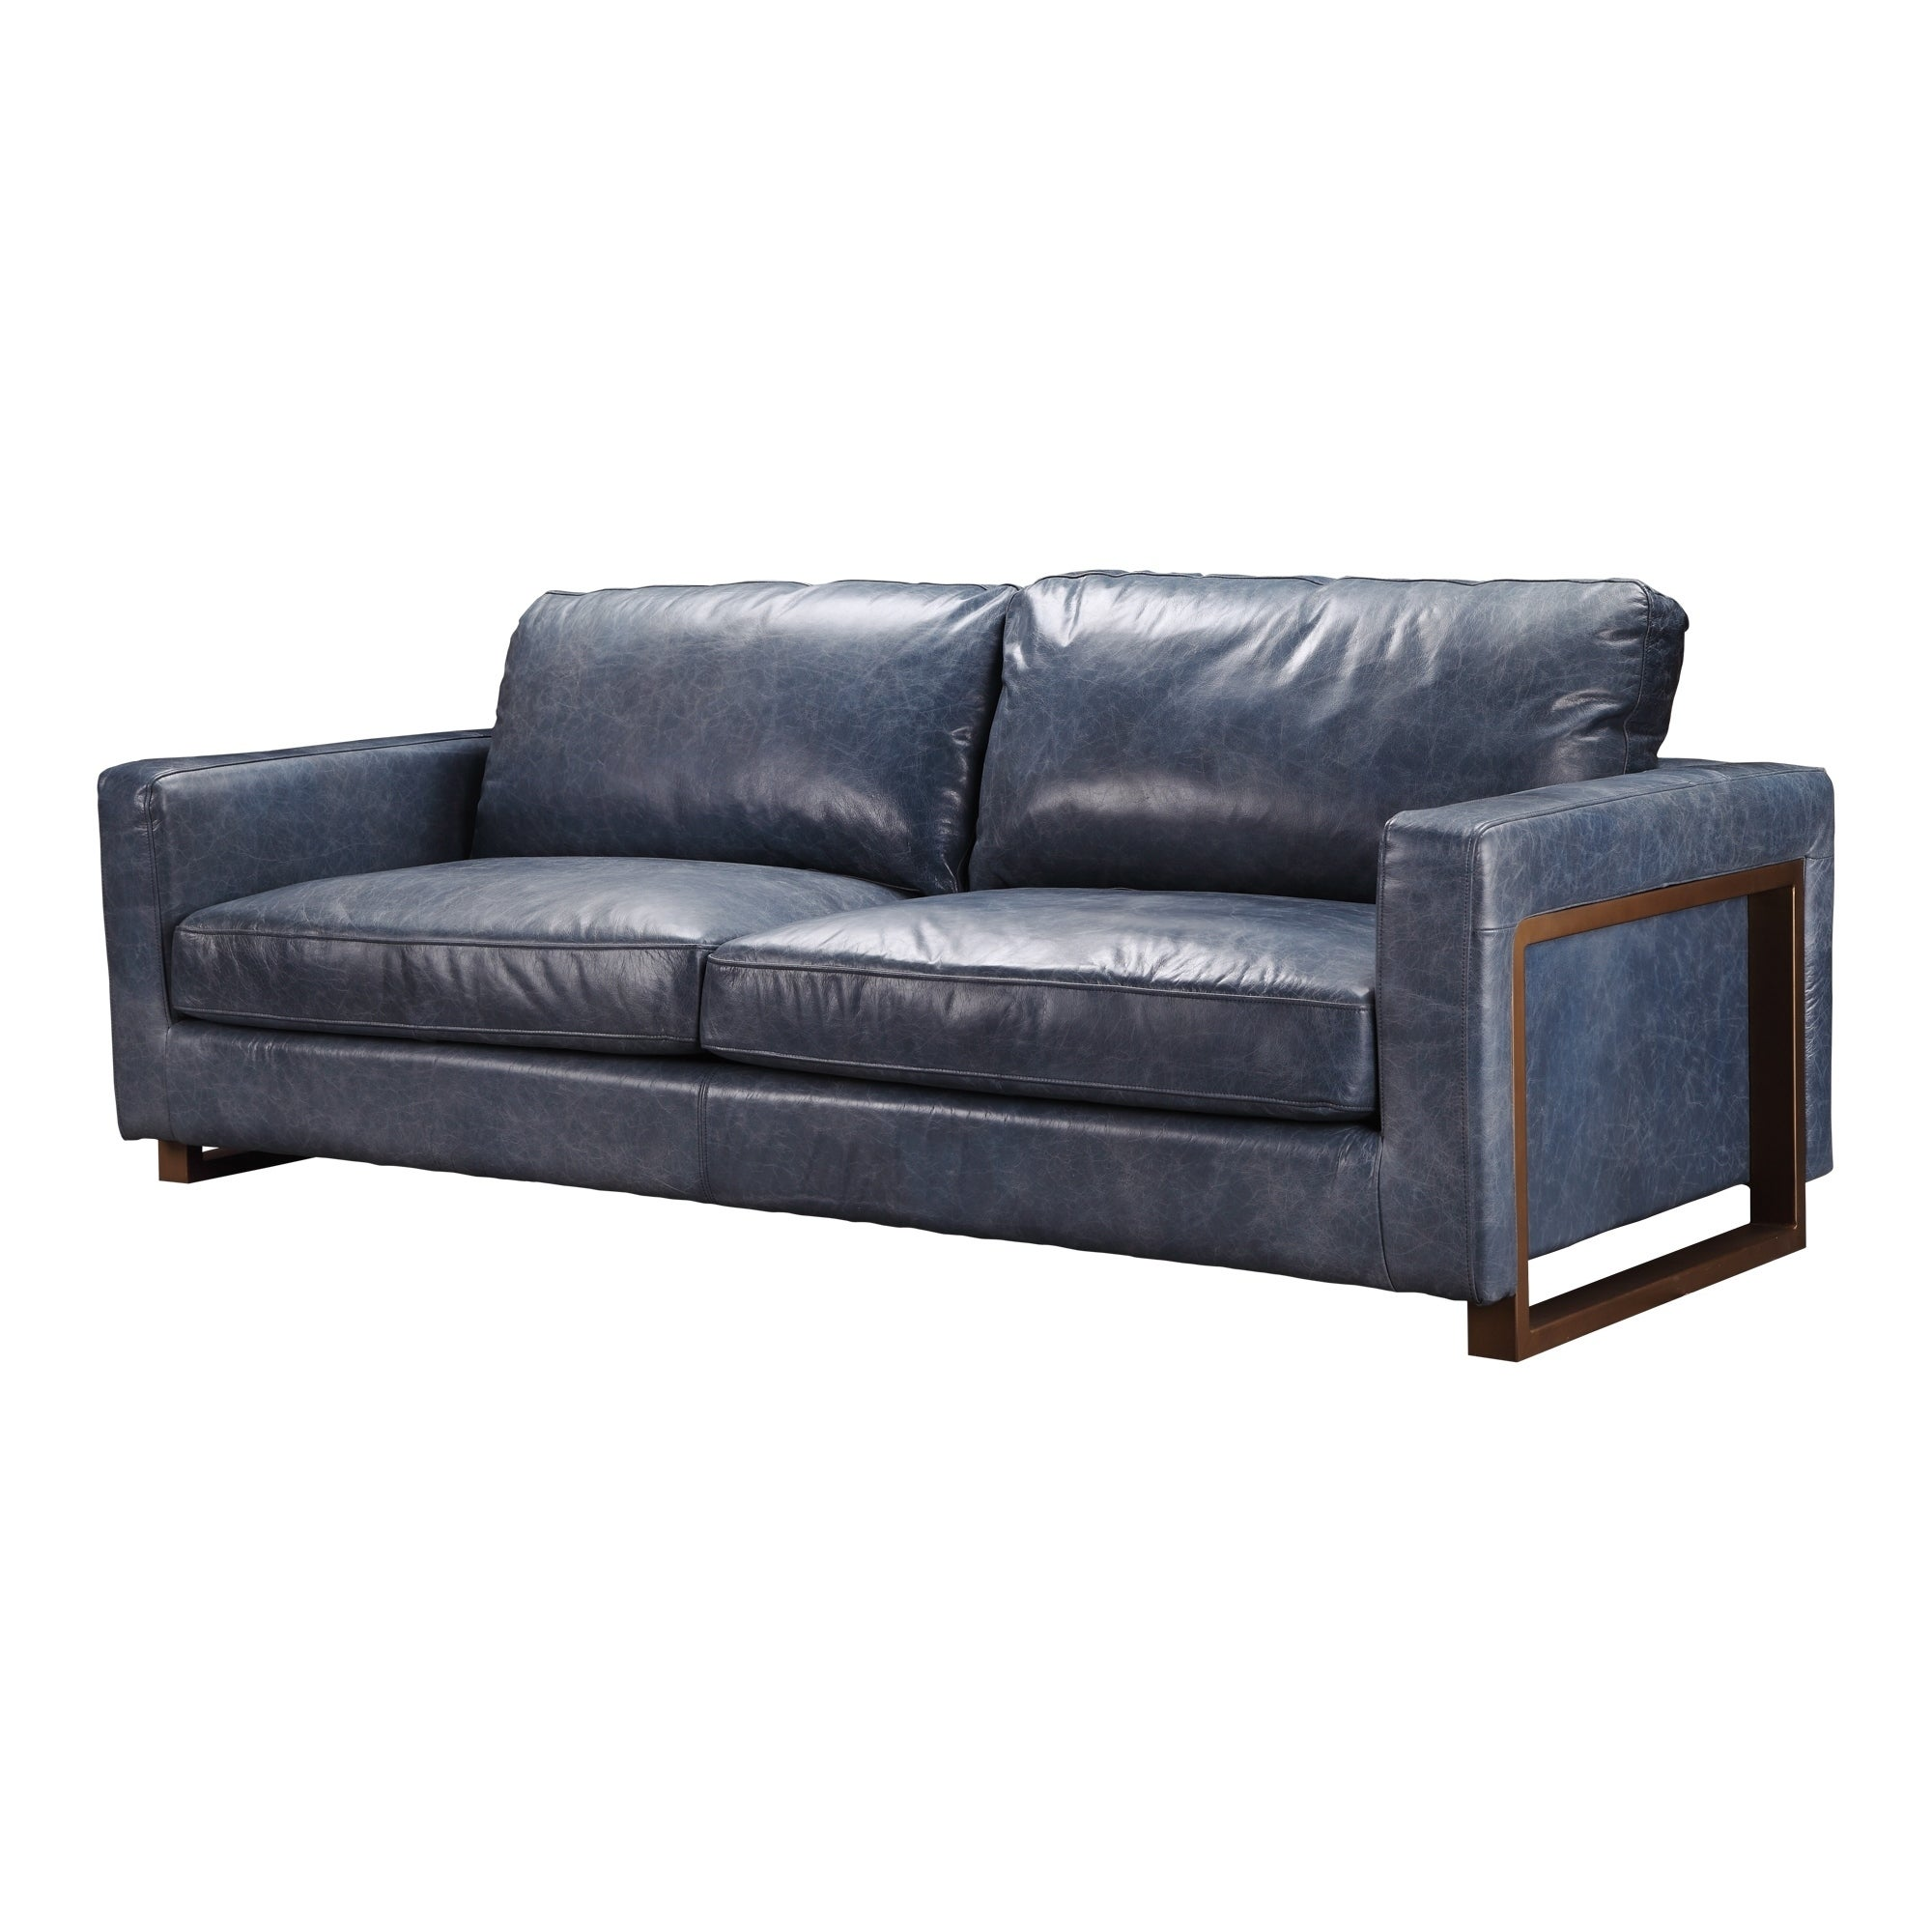 Aurelle Home Navy Blue Leather and Iron Modern Sofa